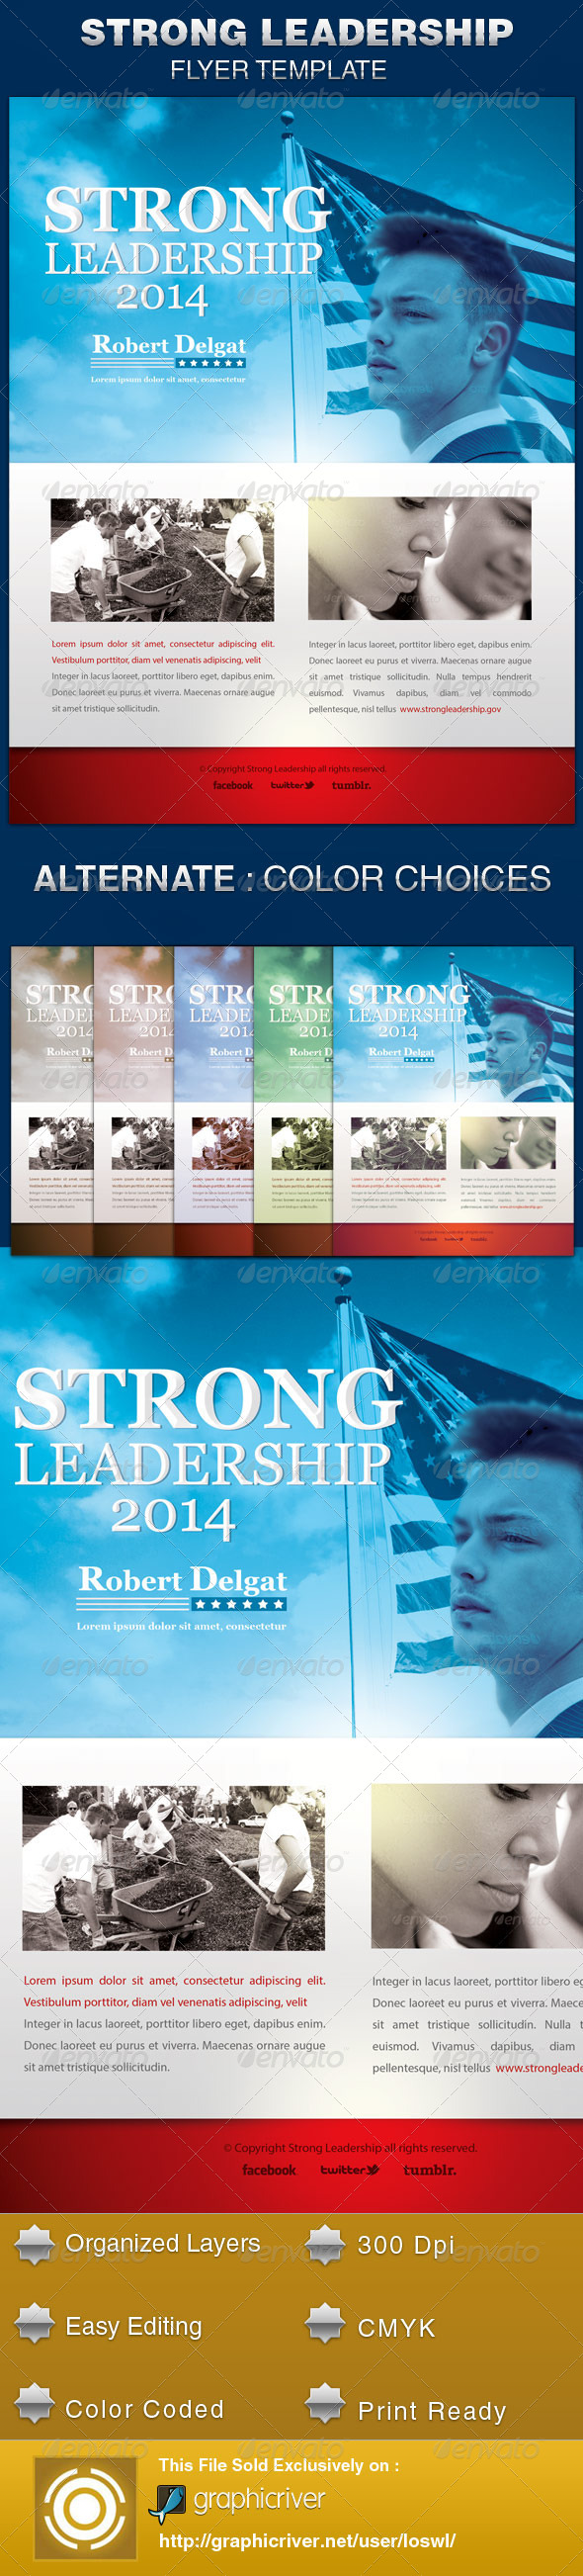 GraphicRiver Strong Leadership Political Flyer Template 5484230